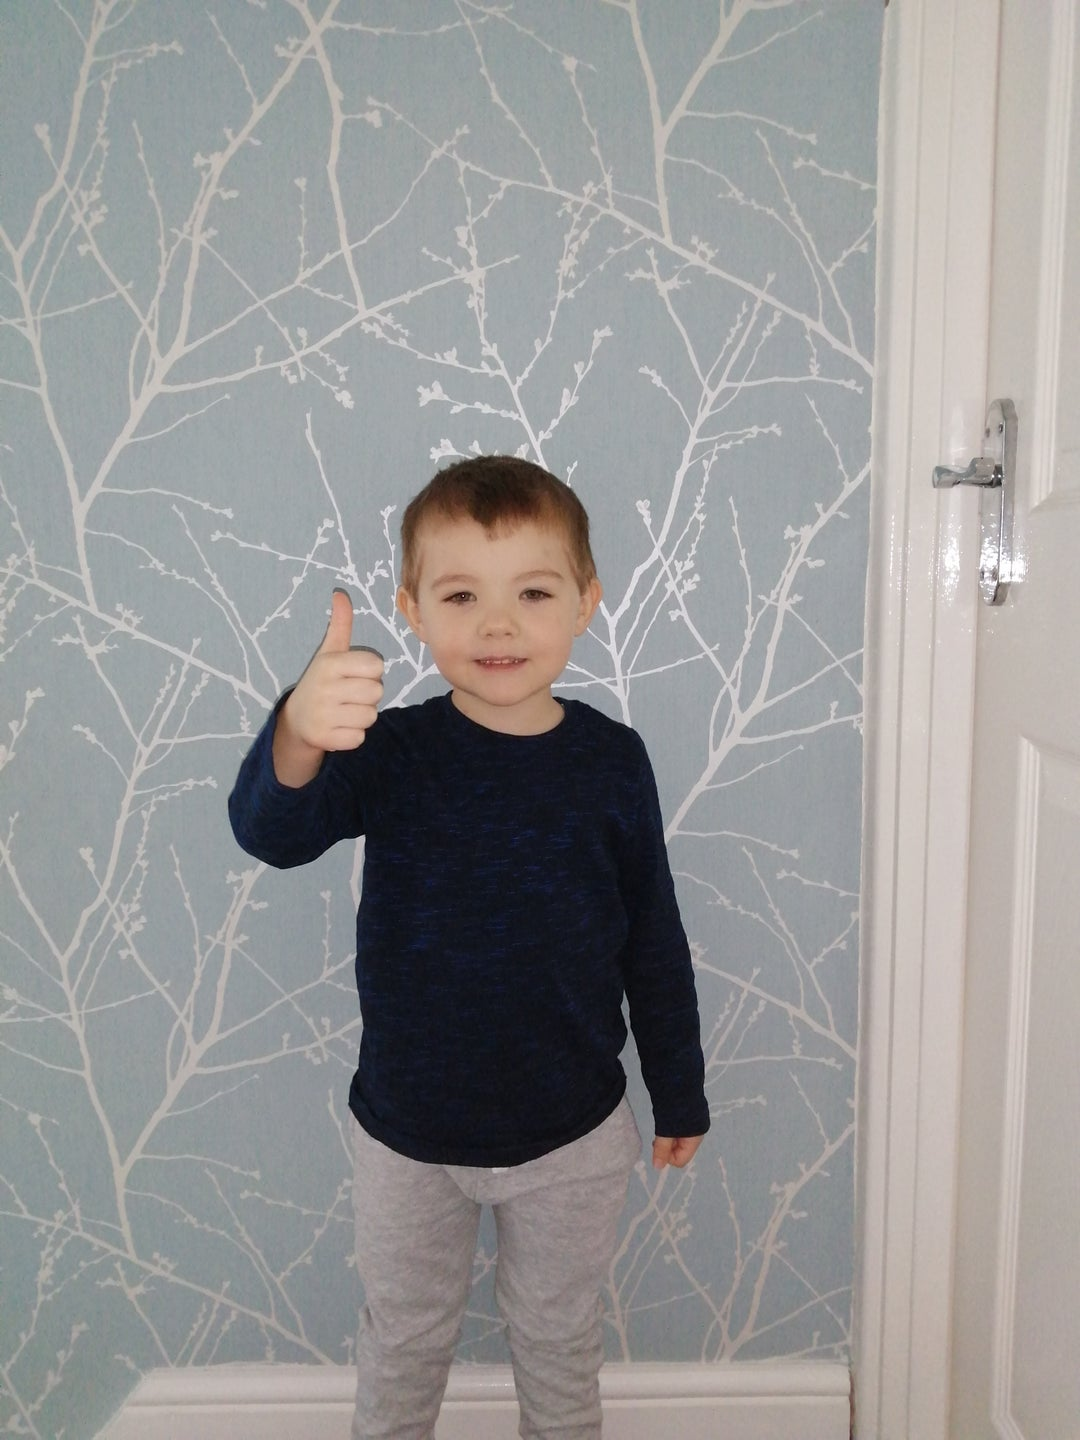 4 year old Emmett is standing with his right thumb up, he is smiling and looking at the camera, there is patterned wall paper in the background